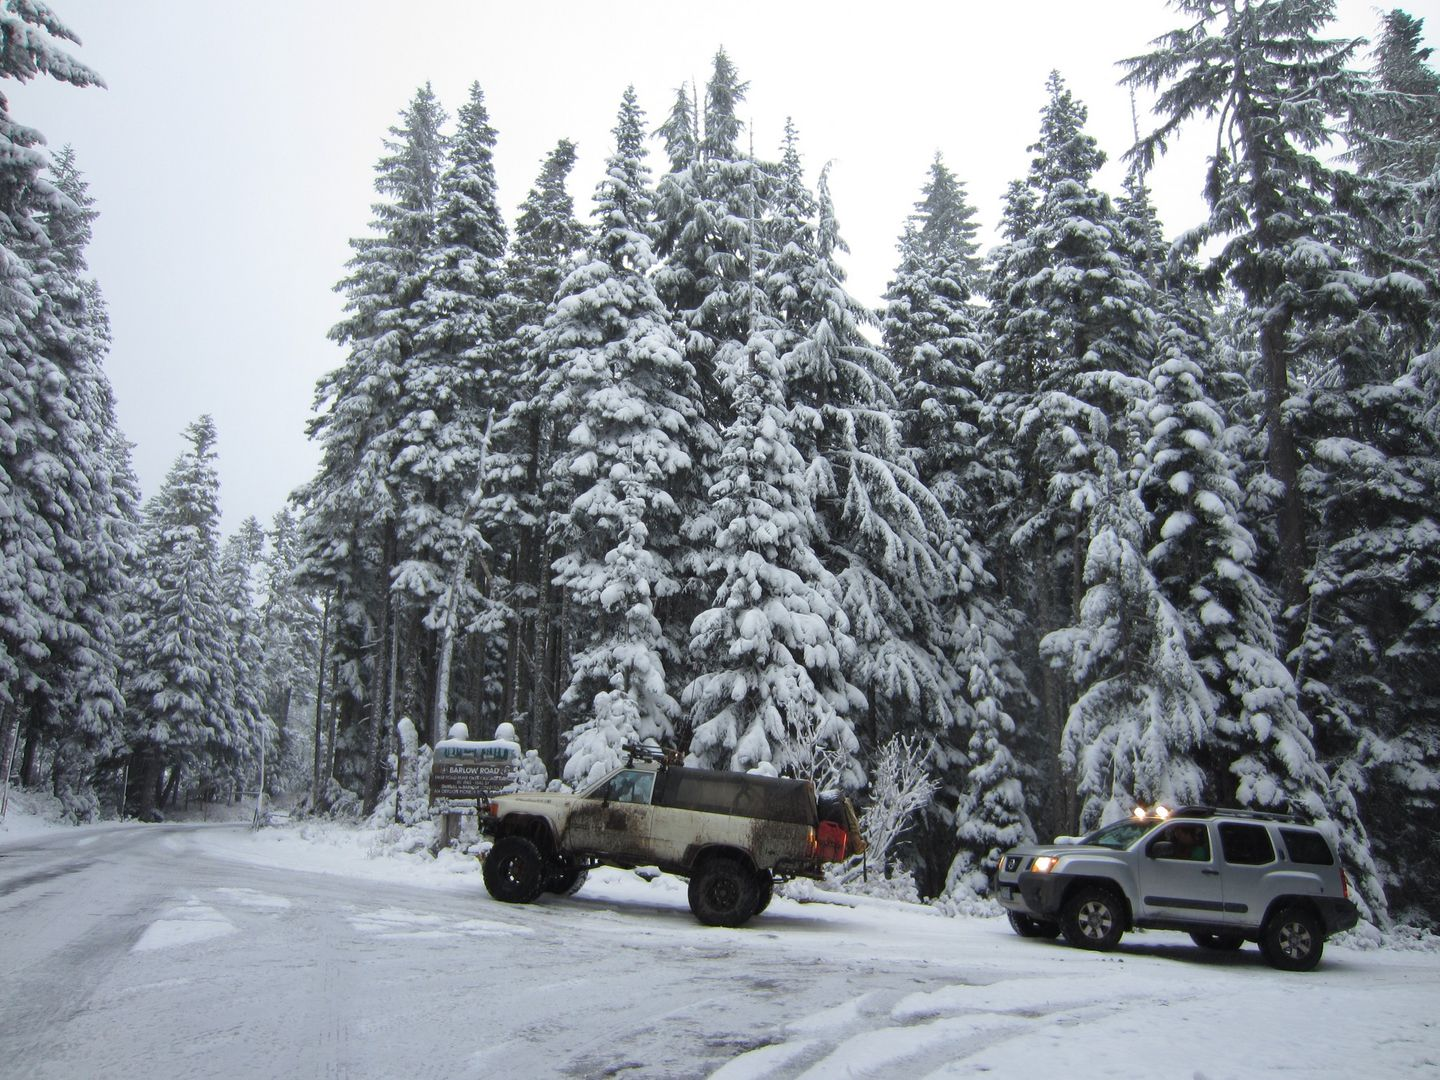 Barlow Trail - Waypoint 45: End of Trail -- Go Right to Return to Oregon Highway 35